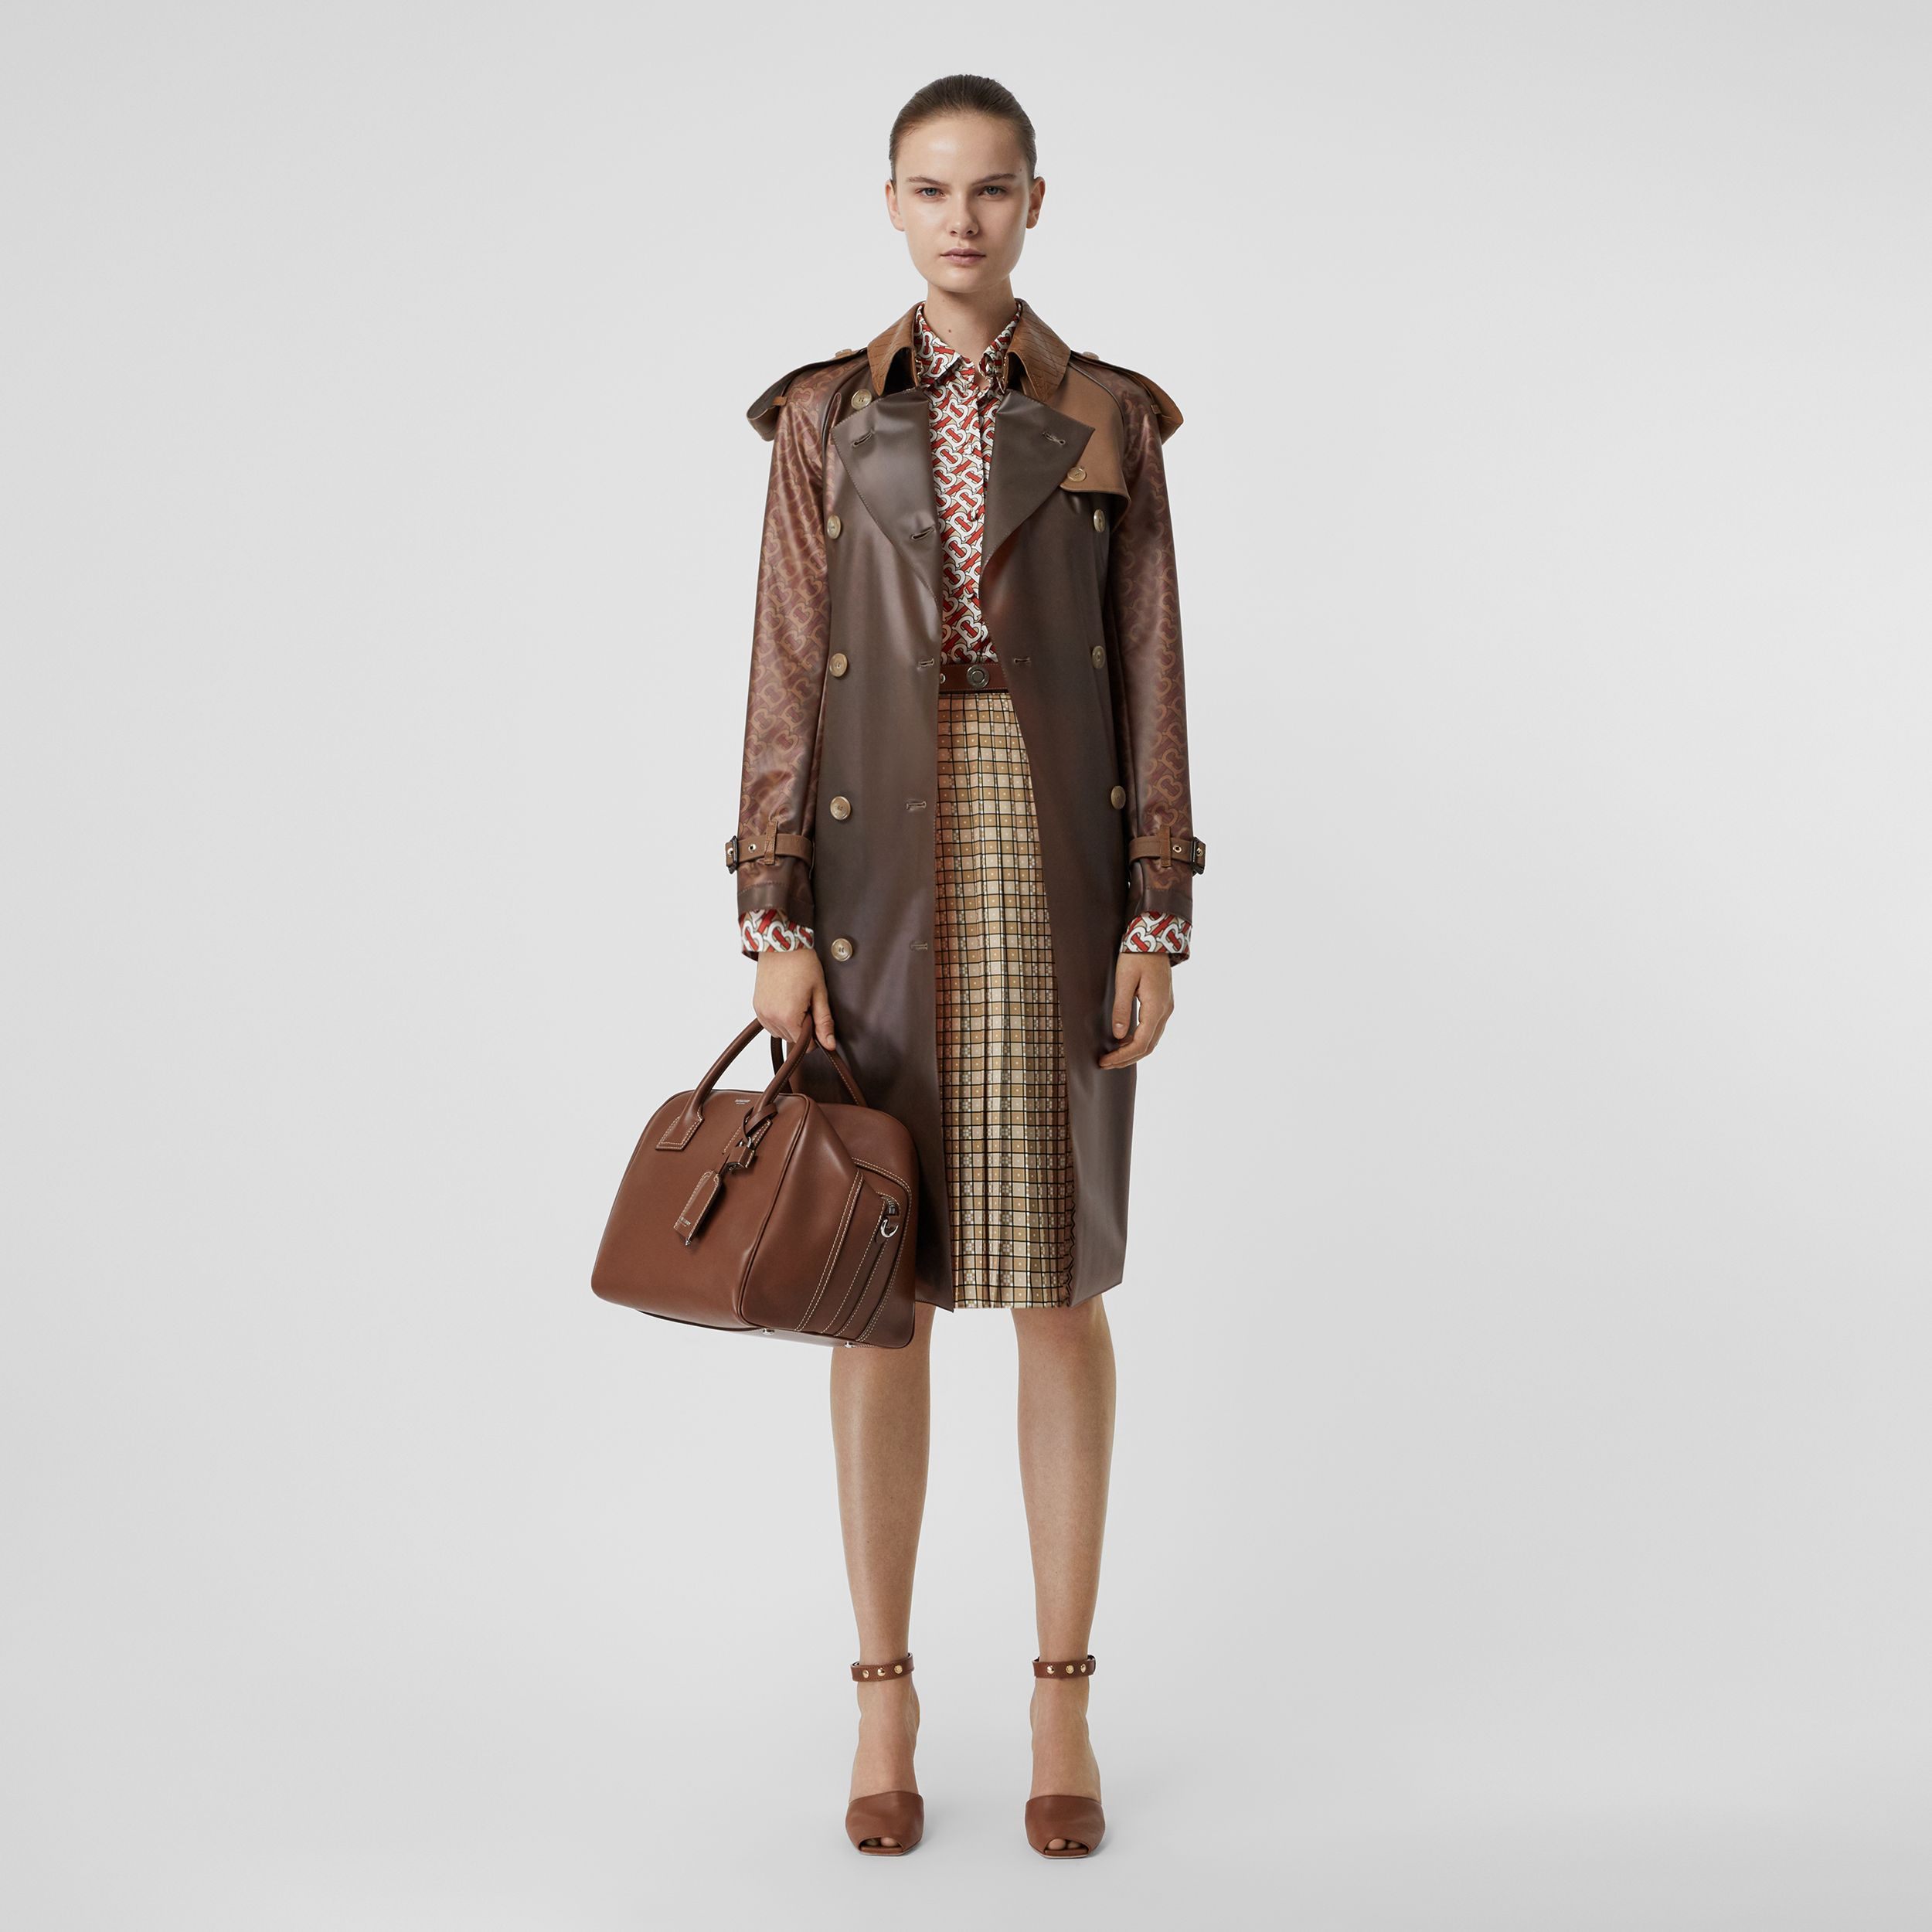 Leather Detail Showerproof Trench Coat in Flaxseed | Burberry - 1